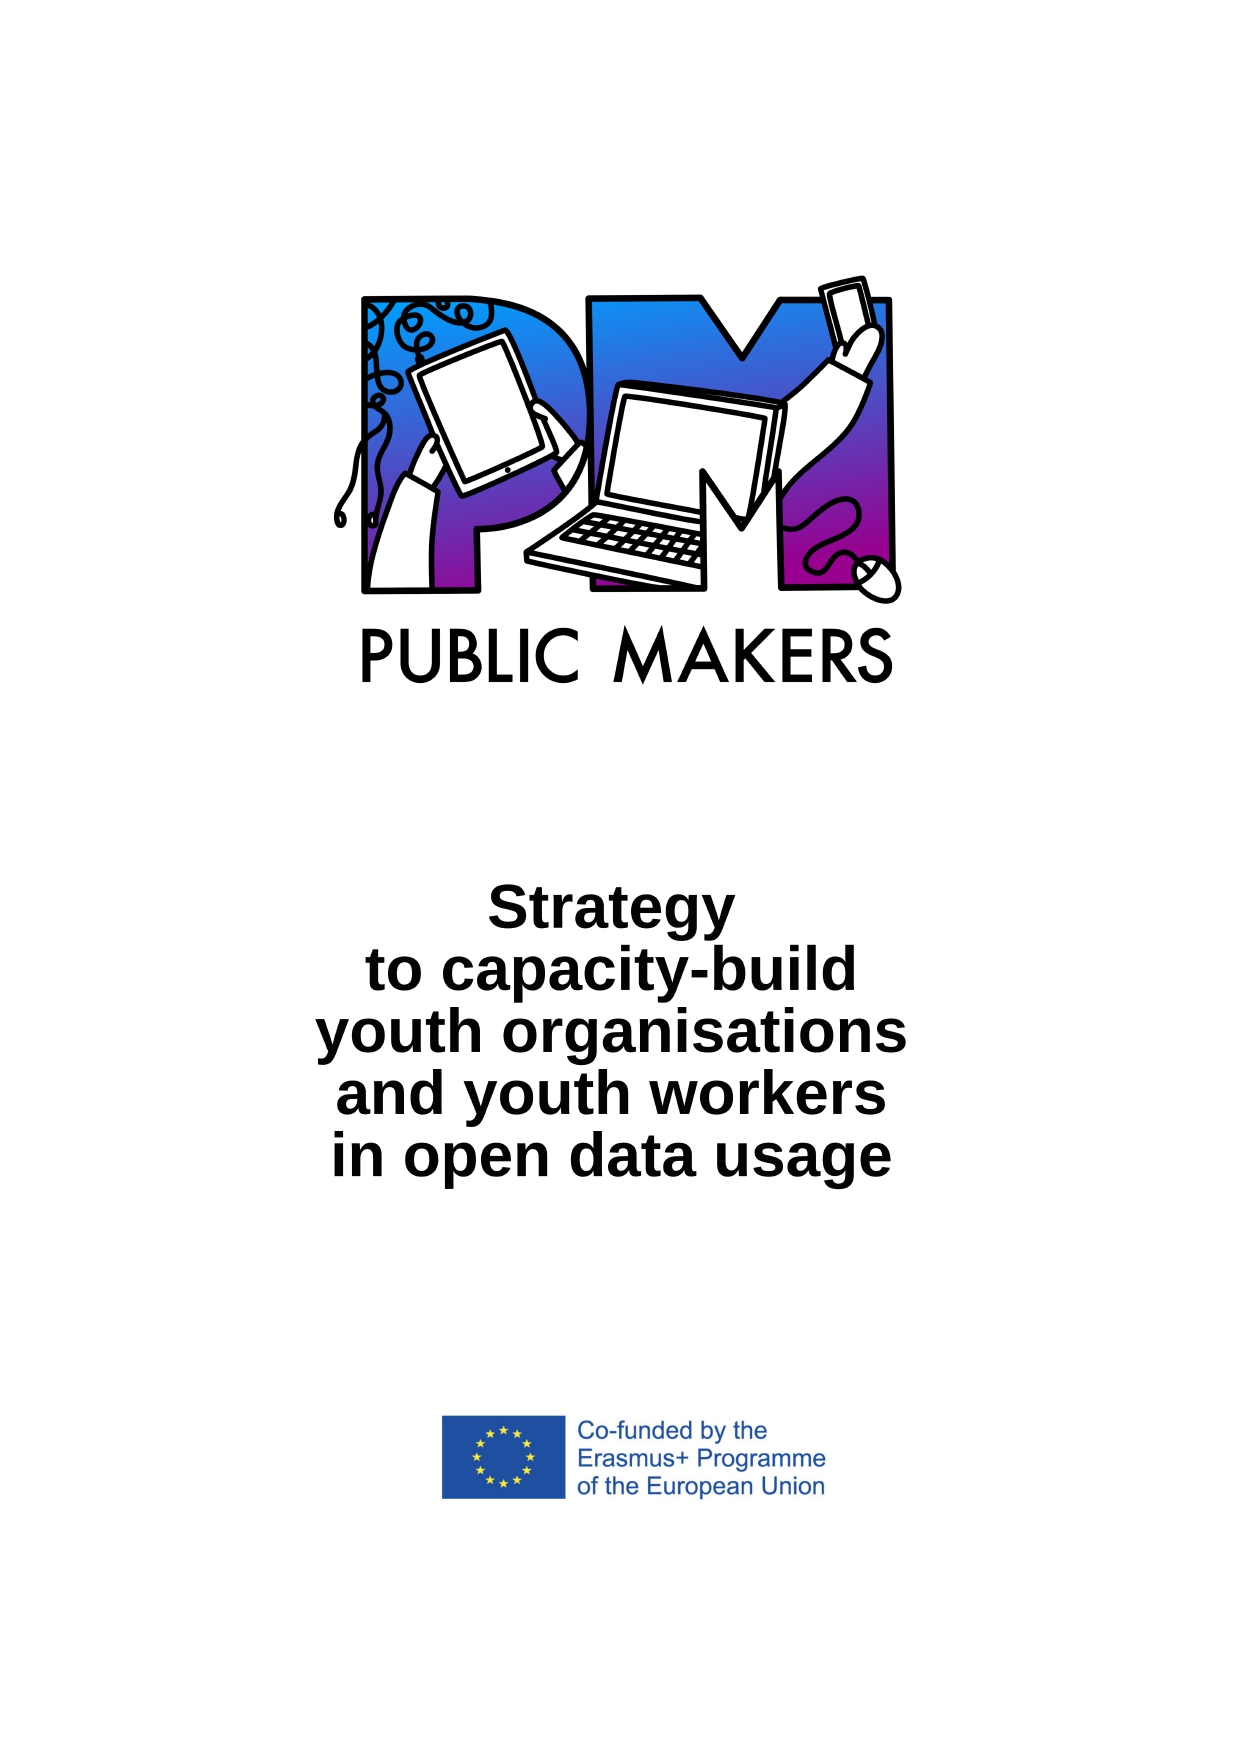 Open data strategy for youth organisations (O1)